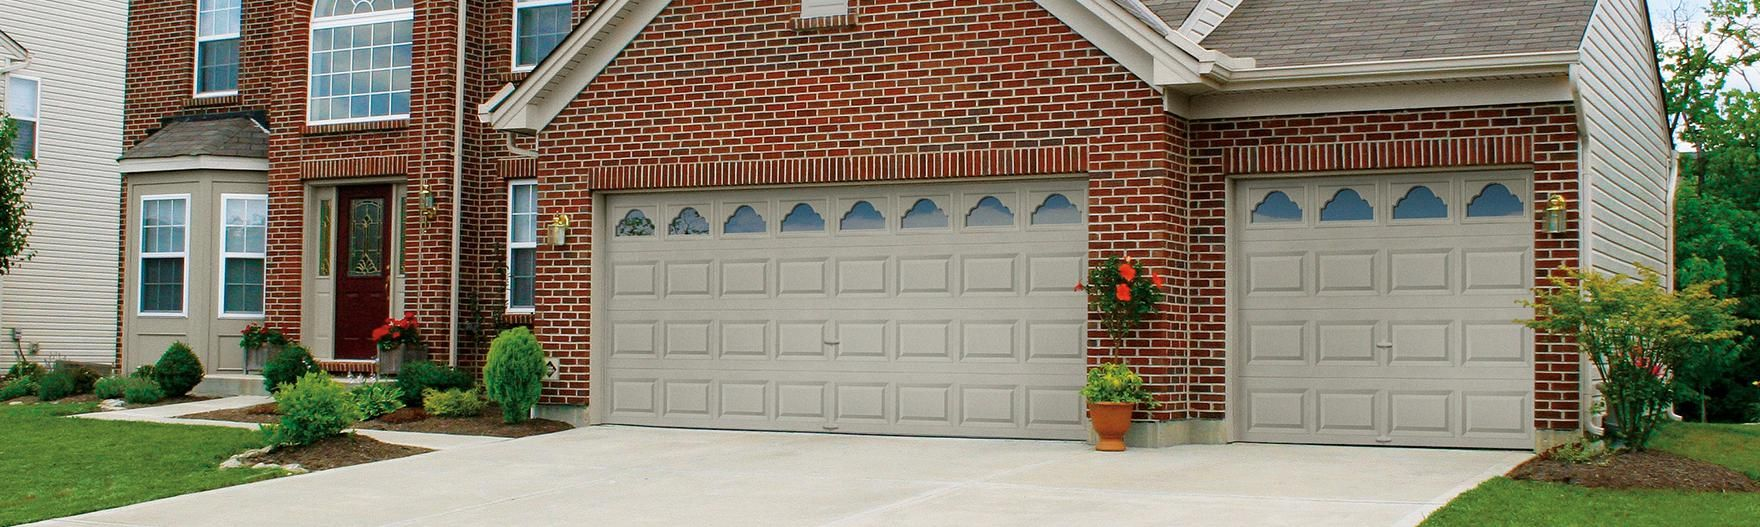 Columbia Best Garage Door Repair Would Like To Thank More Than